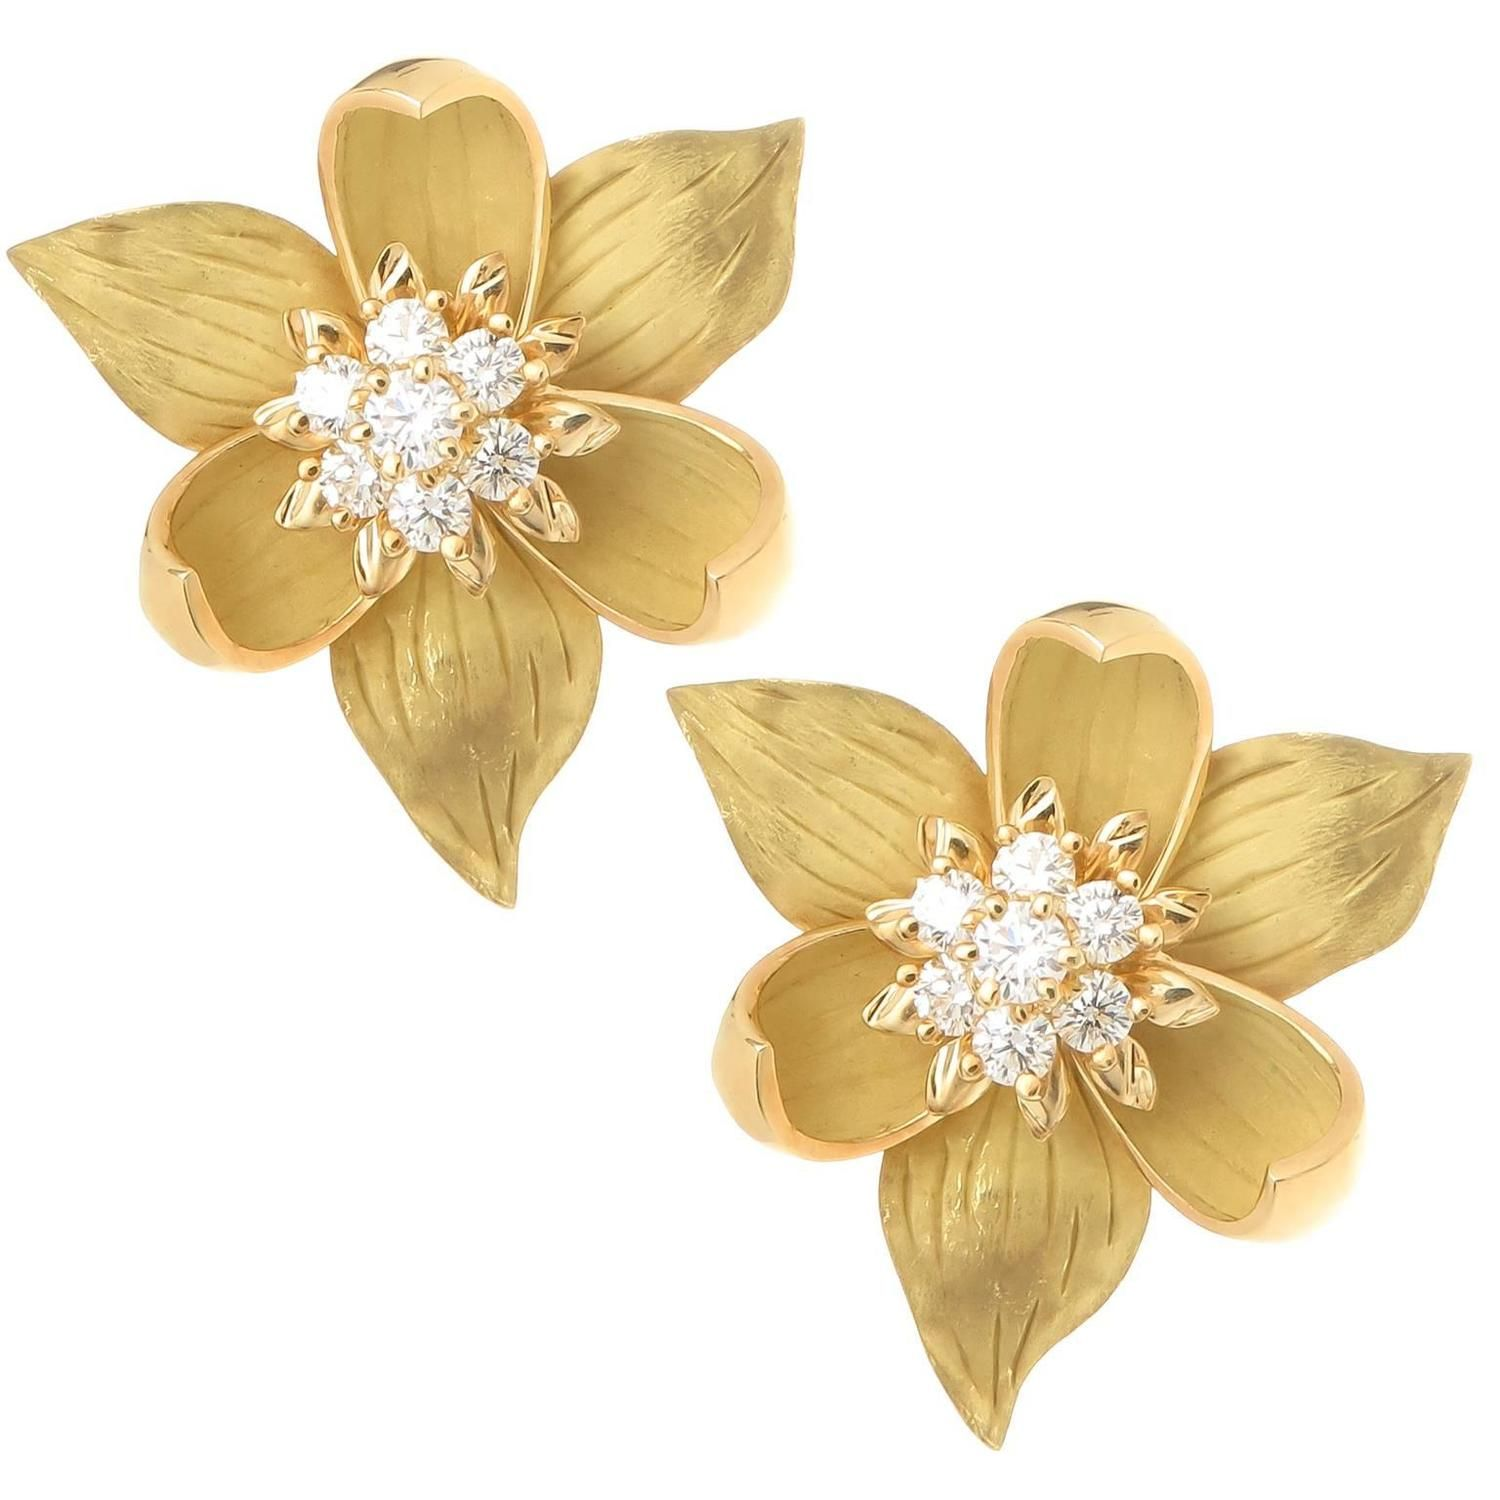 double intl big flower side rose online stud womens crystal shop chic brands earrings prices for sale beads pin